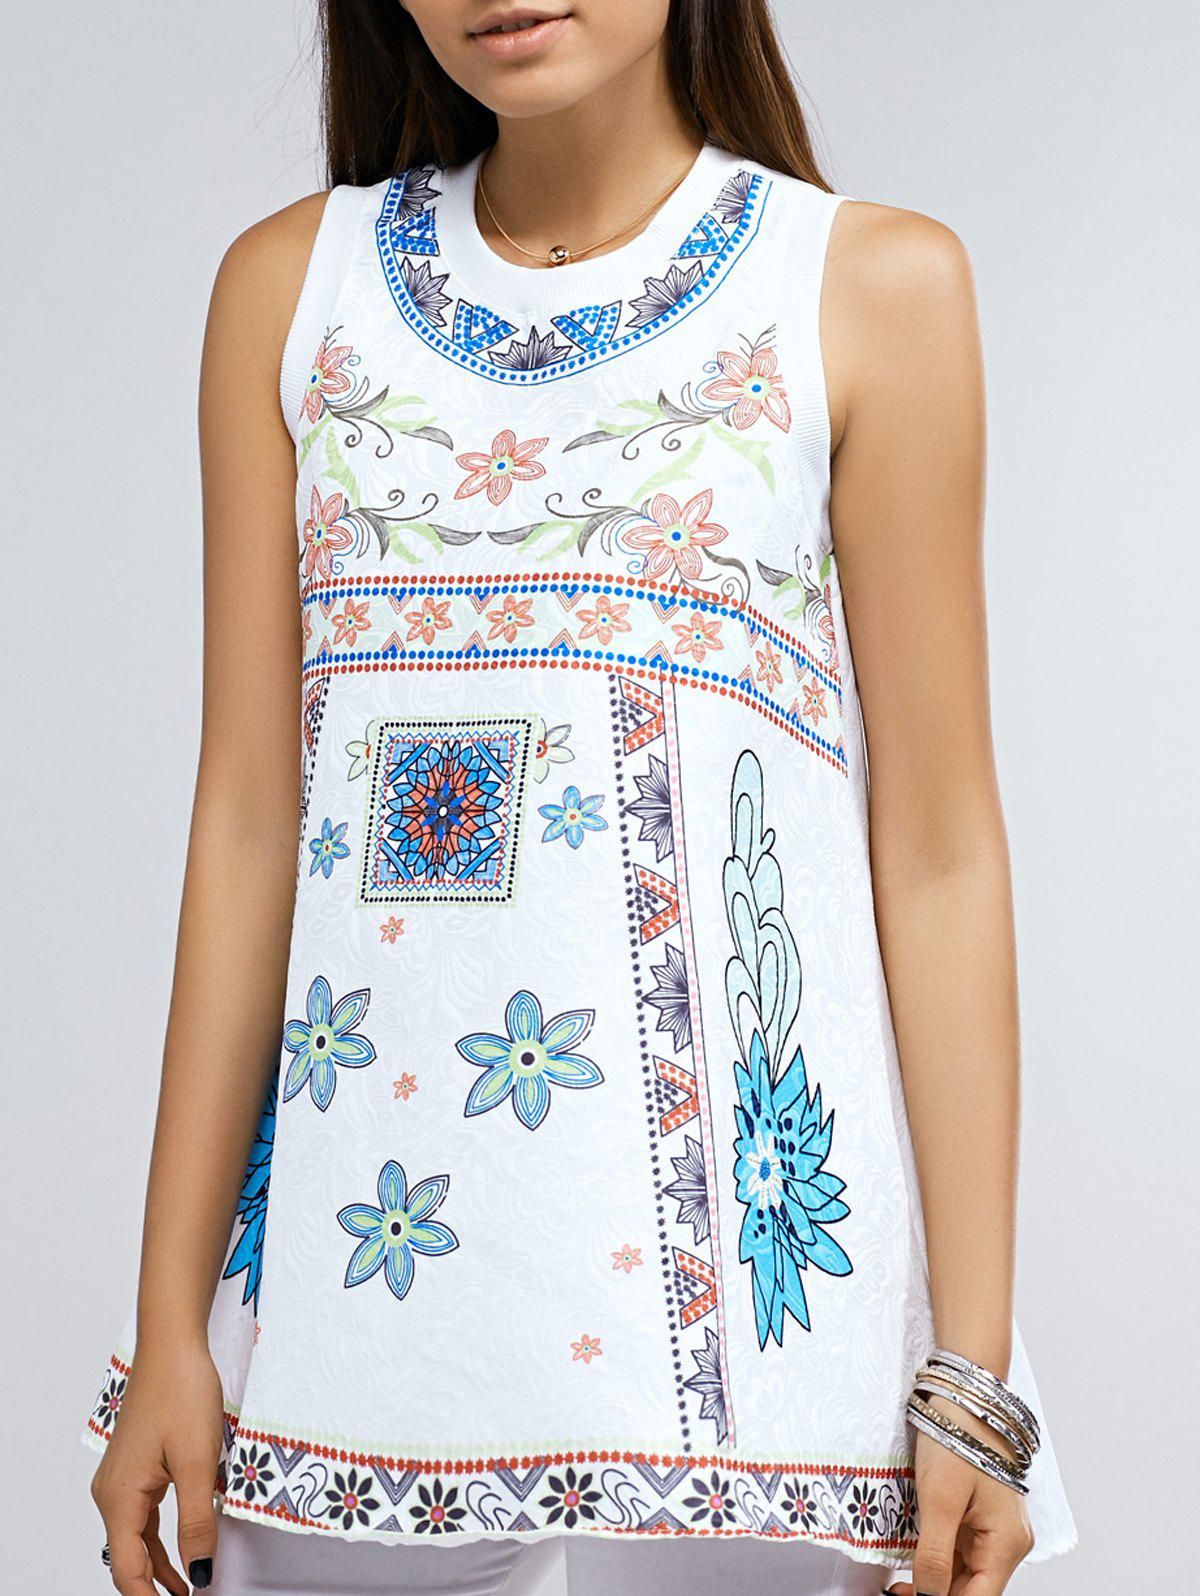 Stylish Round Neck Loose Fitting Floral Print Tank Top For Women